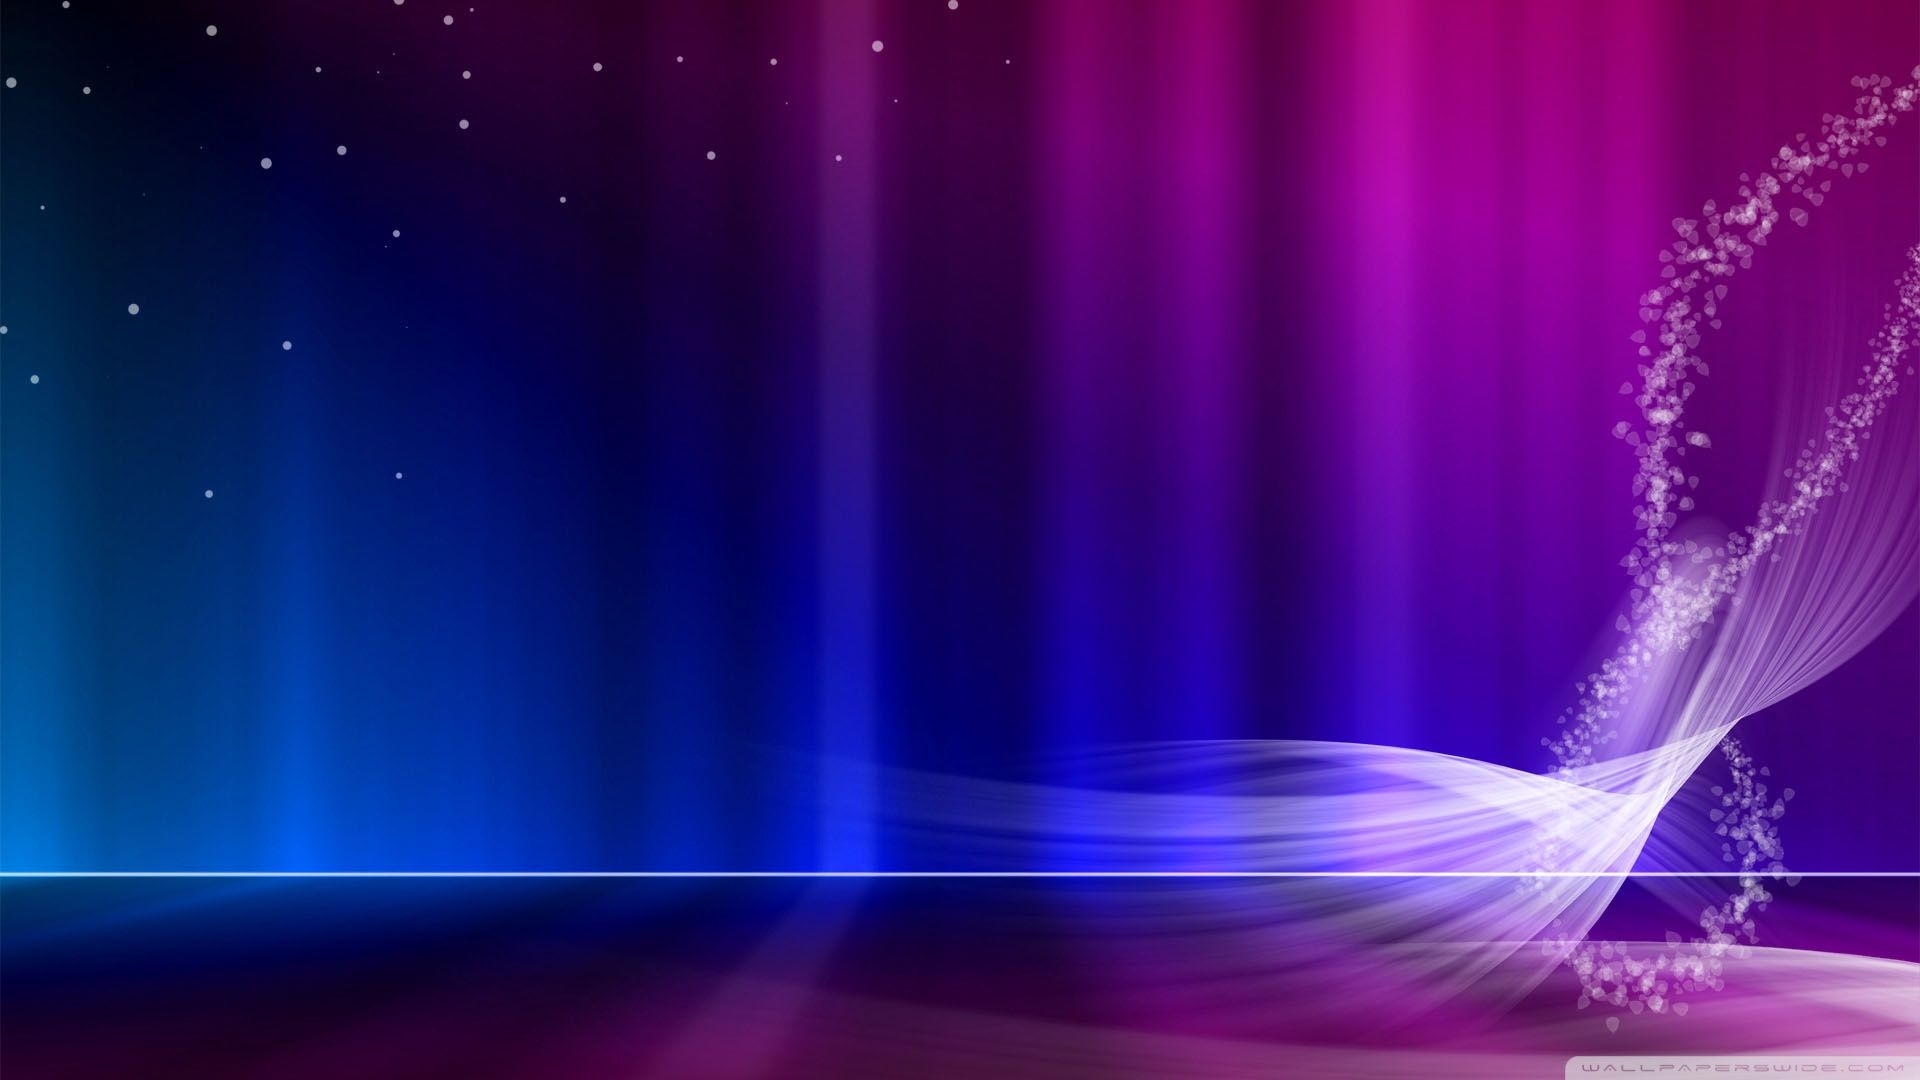 Background wallpapers on this colorful background wallpapers website - Girl Wallpaper